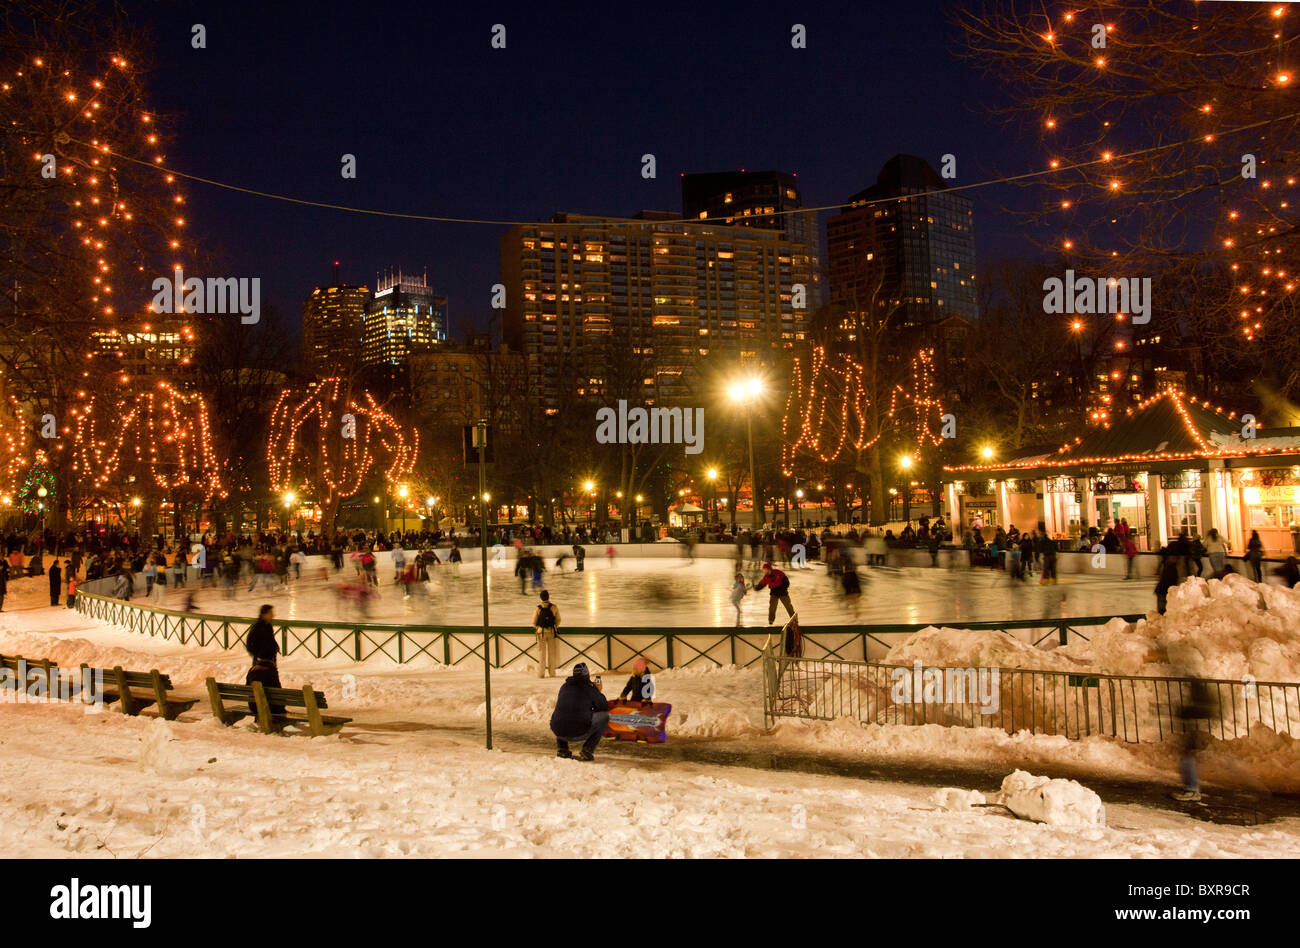 Boston Christmas Stockfotos & Boston Christmas Bilder - Alamy